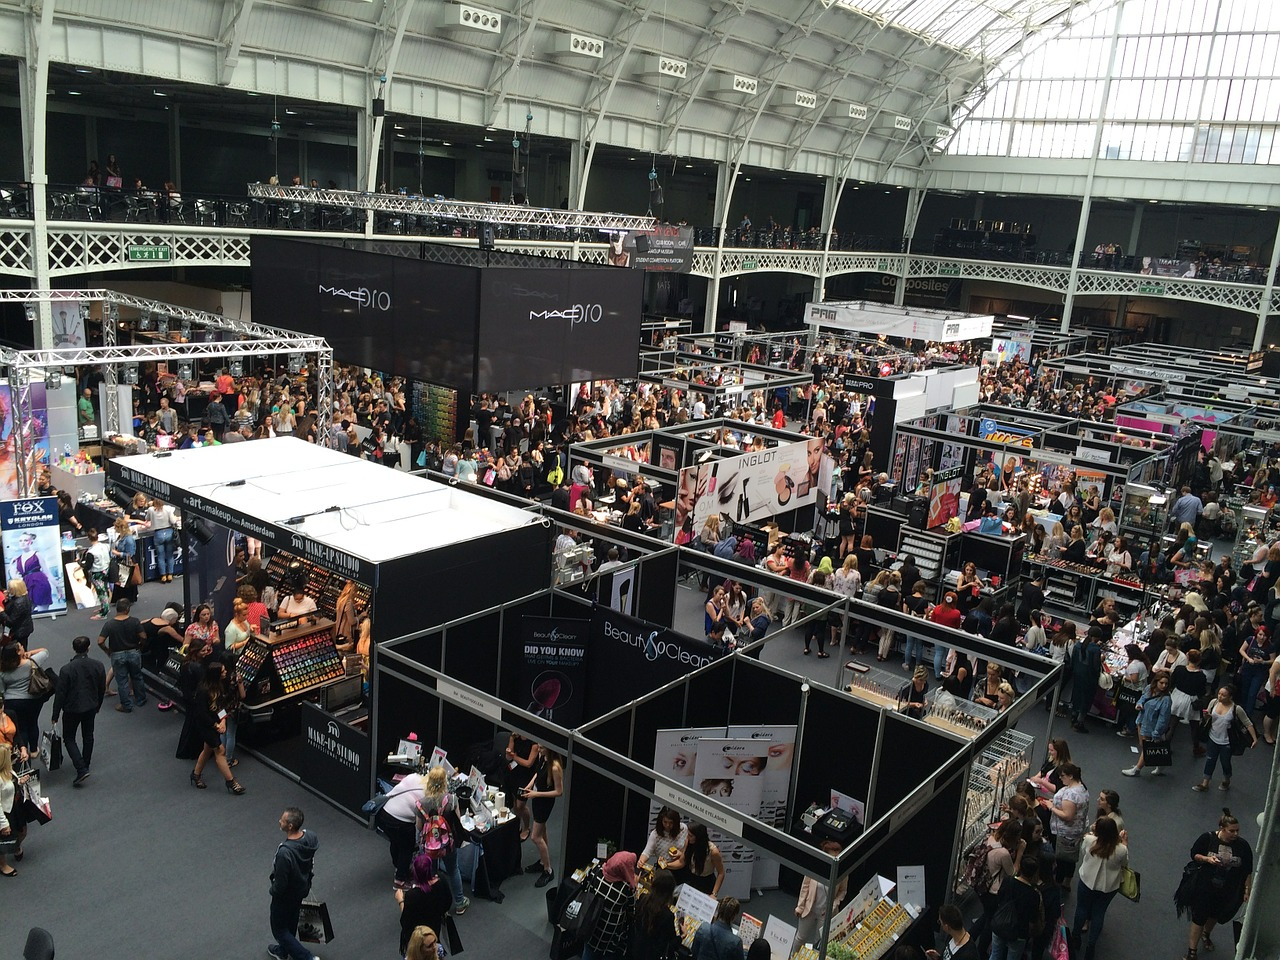 Content Marketing and Trade Shows: How to Drive Conversions Post-Event